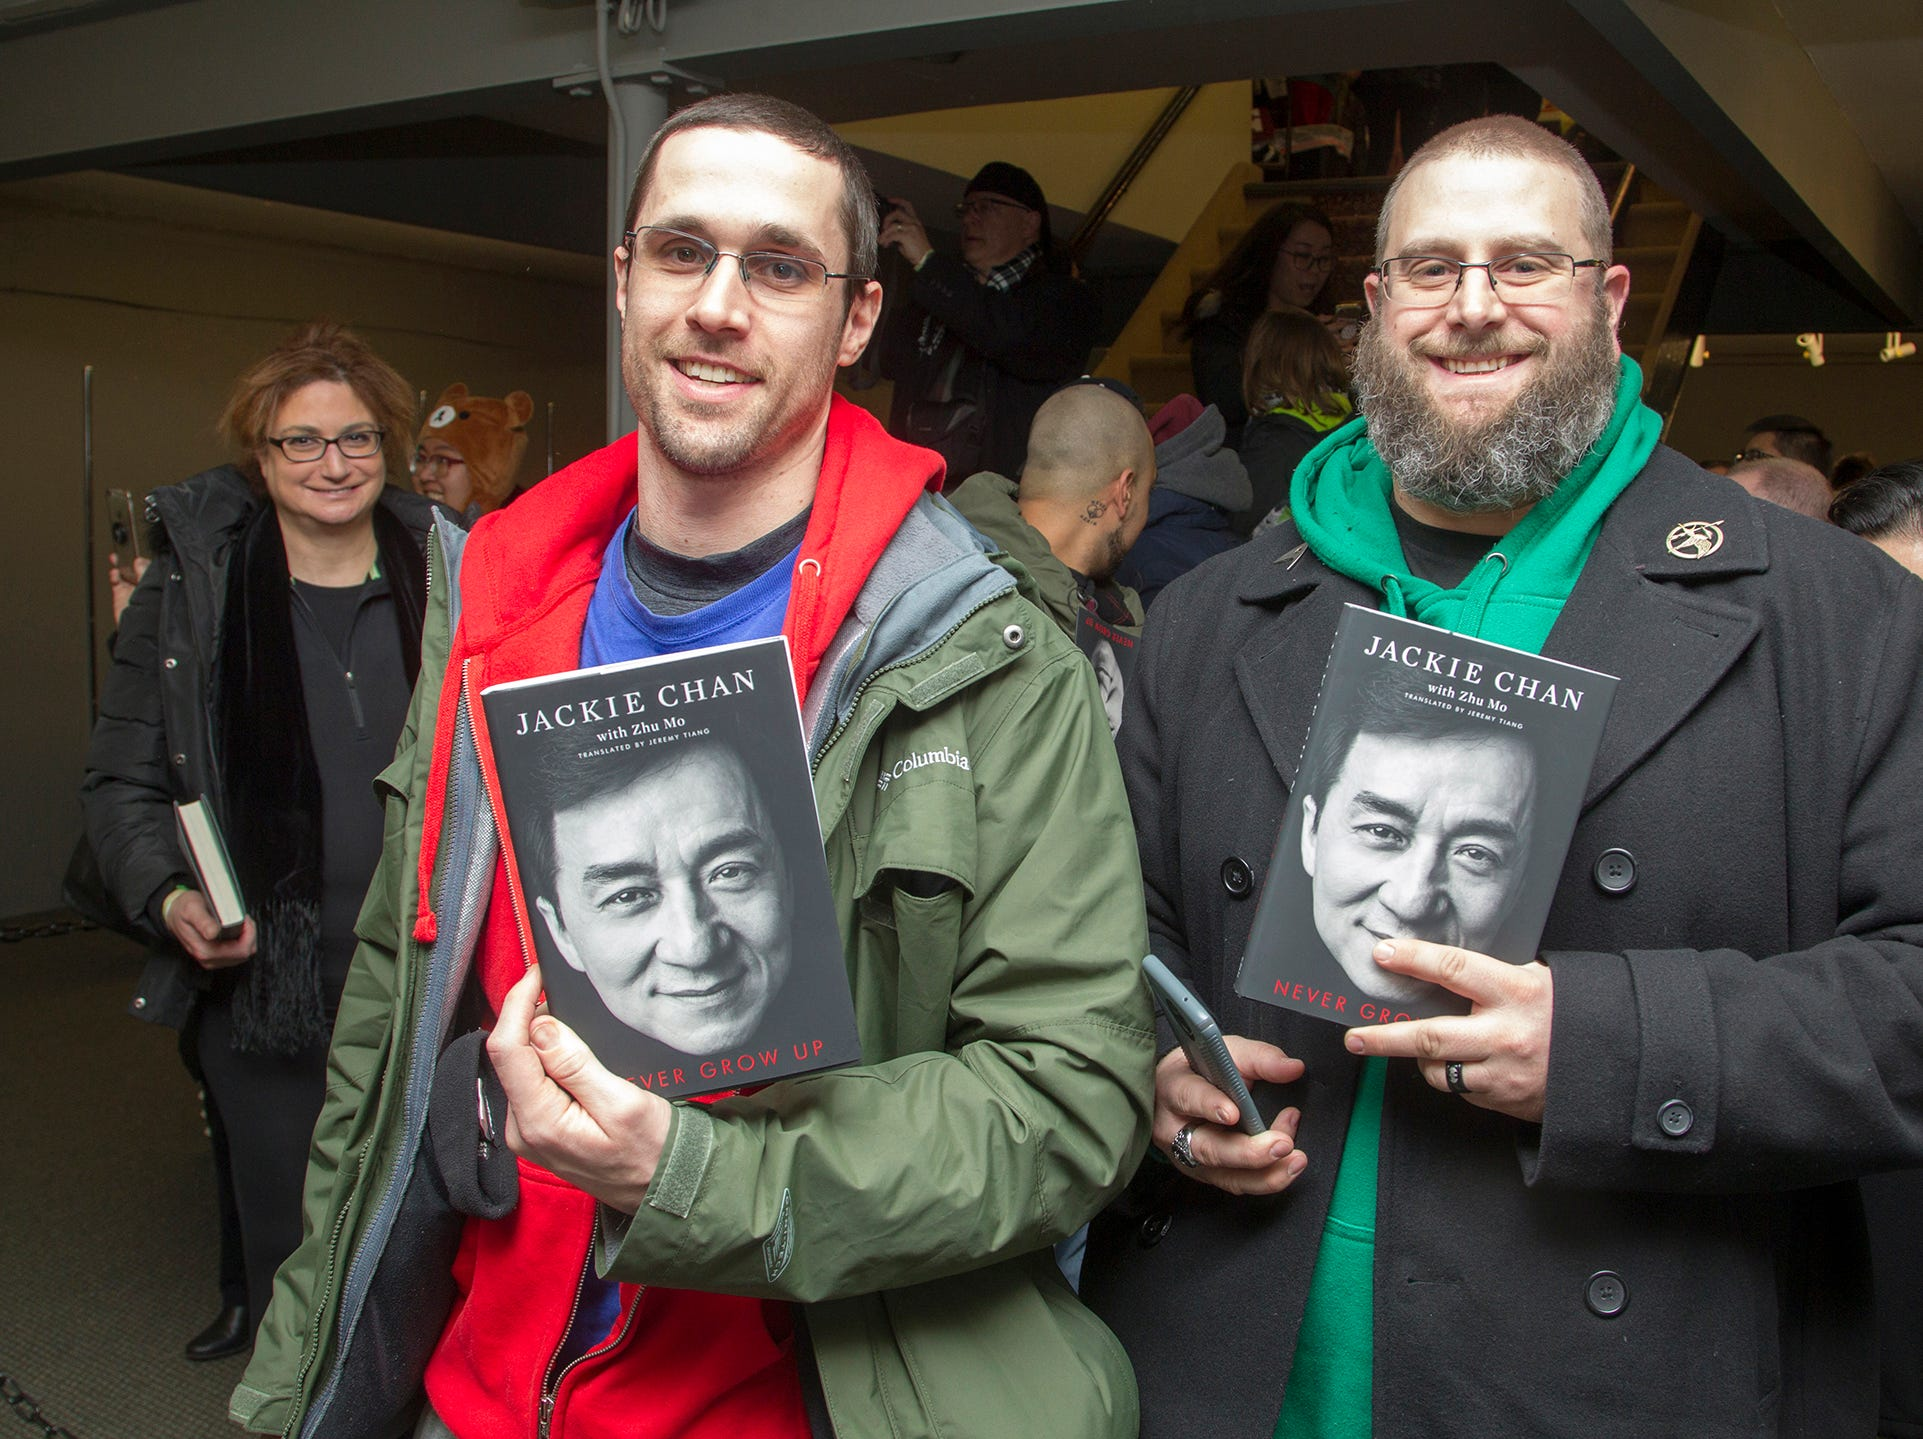 """Larry and Steven. Jackie Chan greets fans at Bookends in Ridgewood while signing his new book, """"Never Grow Up."""" 01/21/2019"""